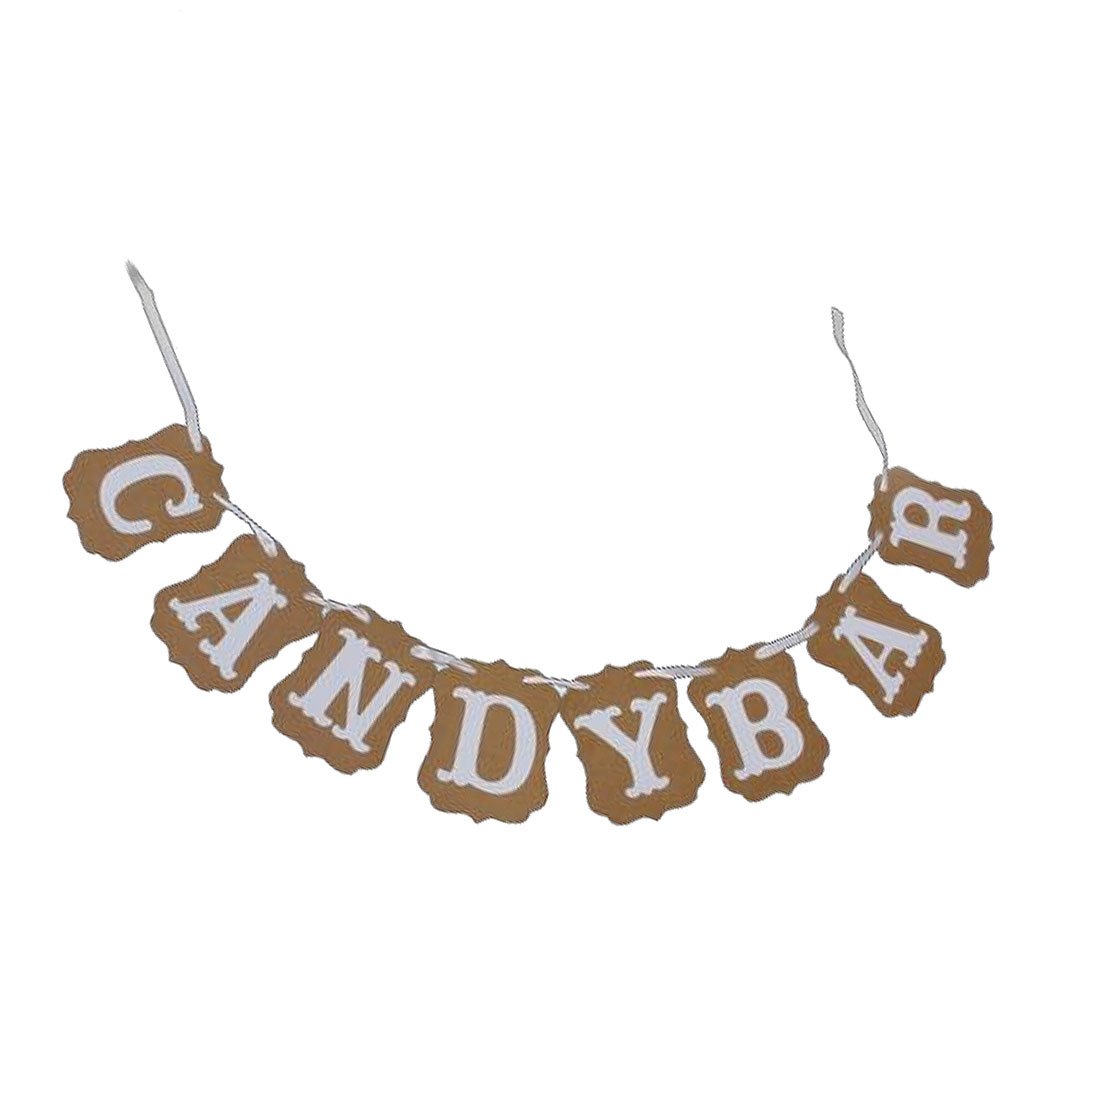 CANDY BAR Letter Birthday Party Ornament Photo Prop Banner Set 8 in 1